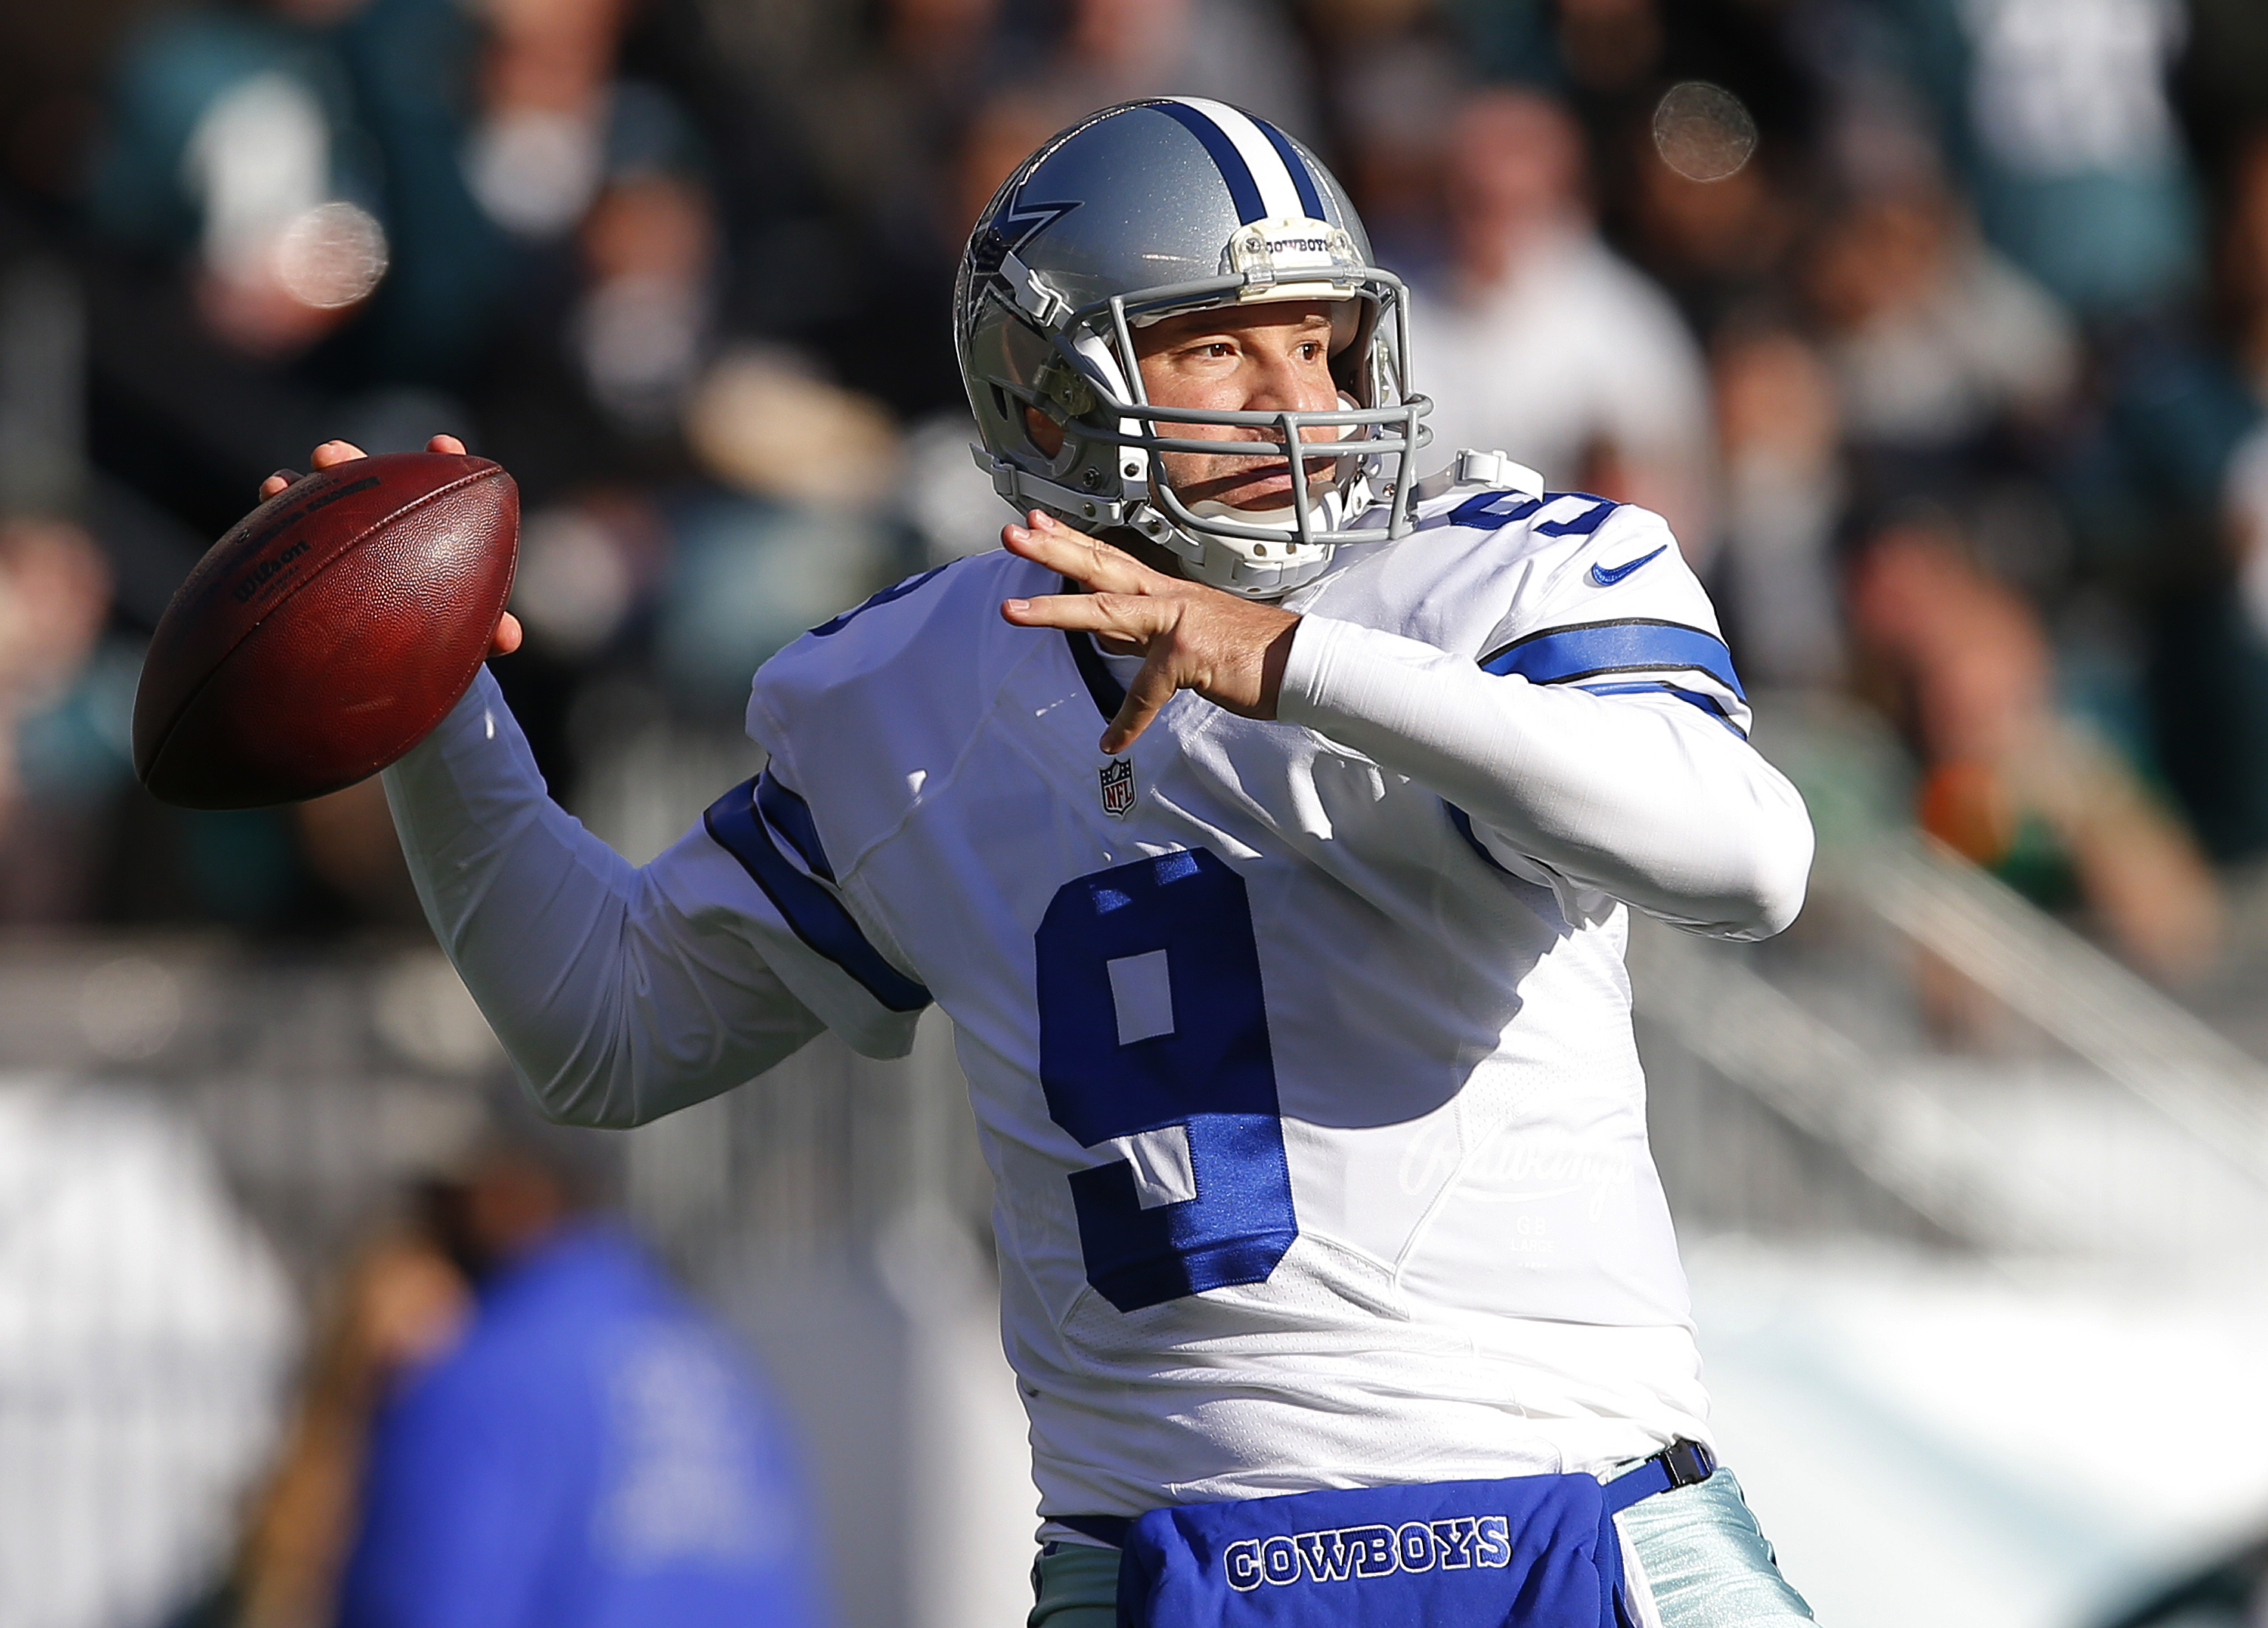 One of the biggest questions in the NFL this offseason is where Cowboys quarterback Tony Romo will land. (Getty Images)